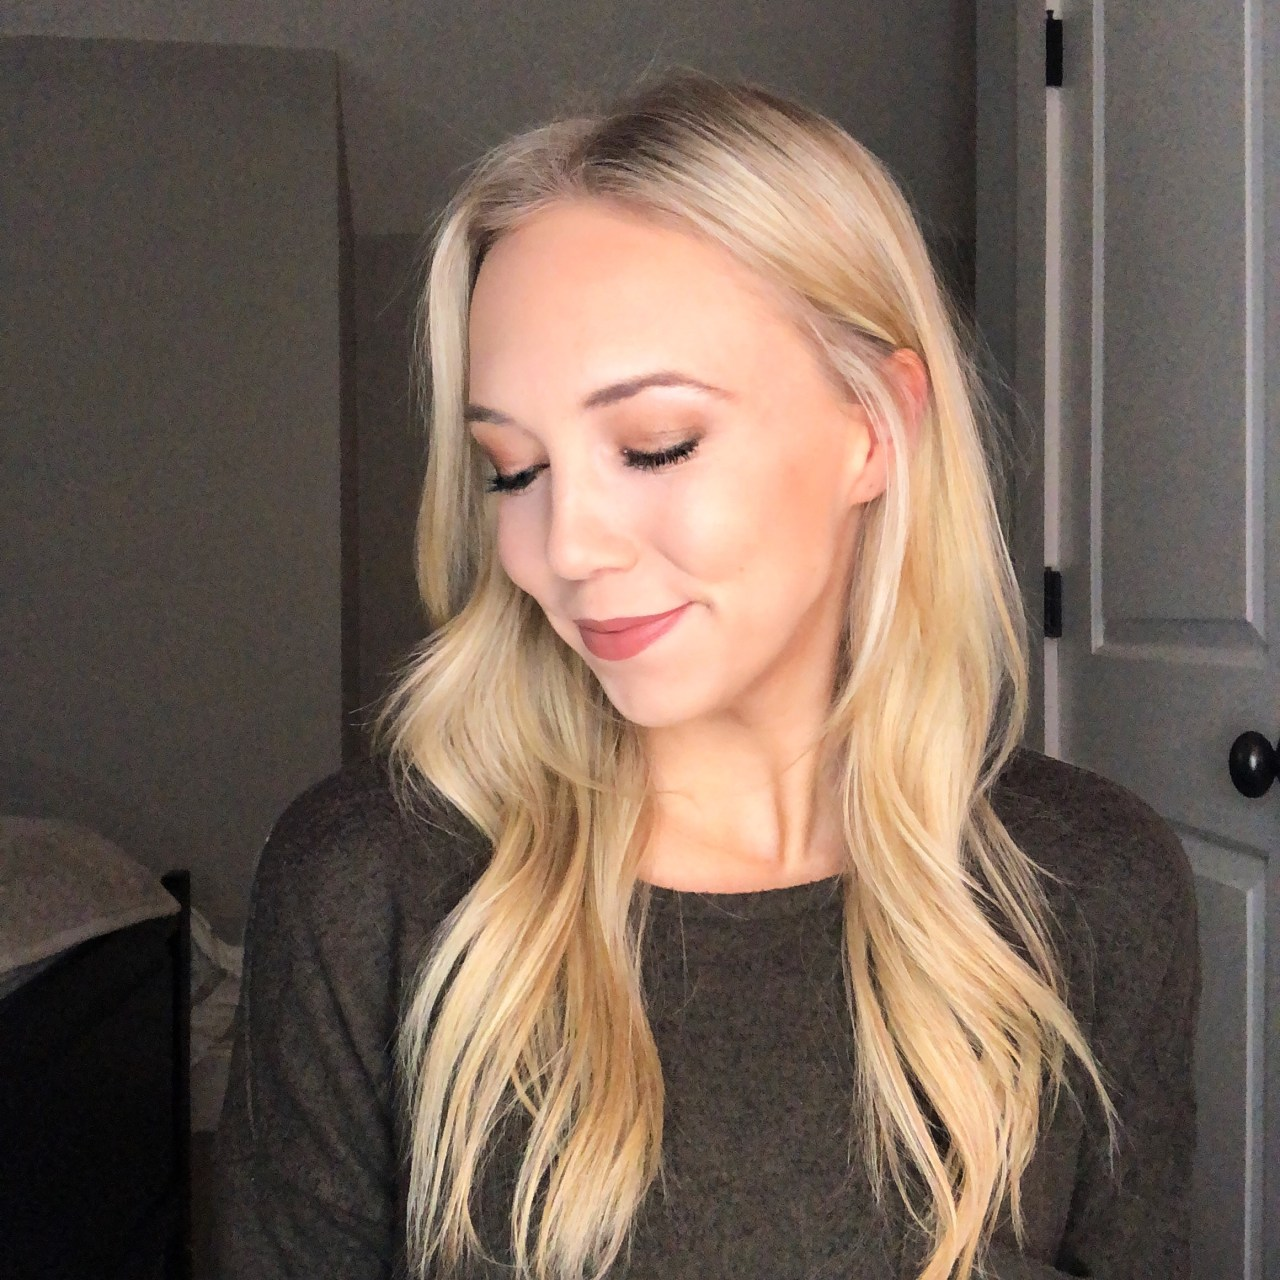 My Everyday Hair and Makeup Look